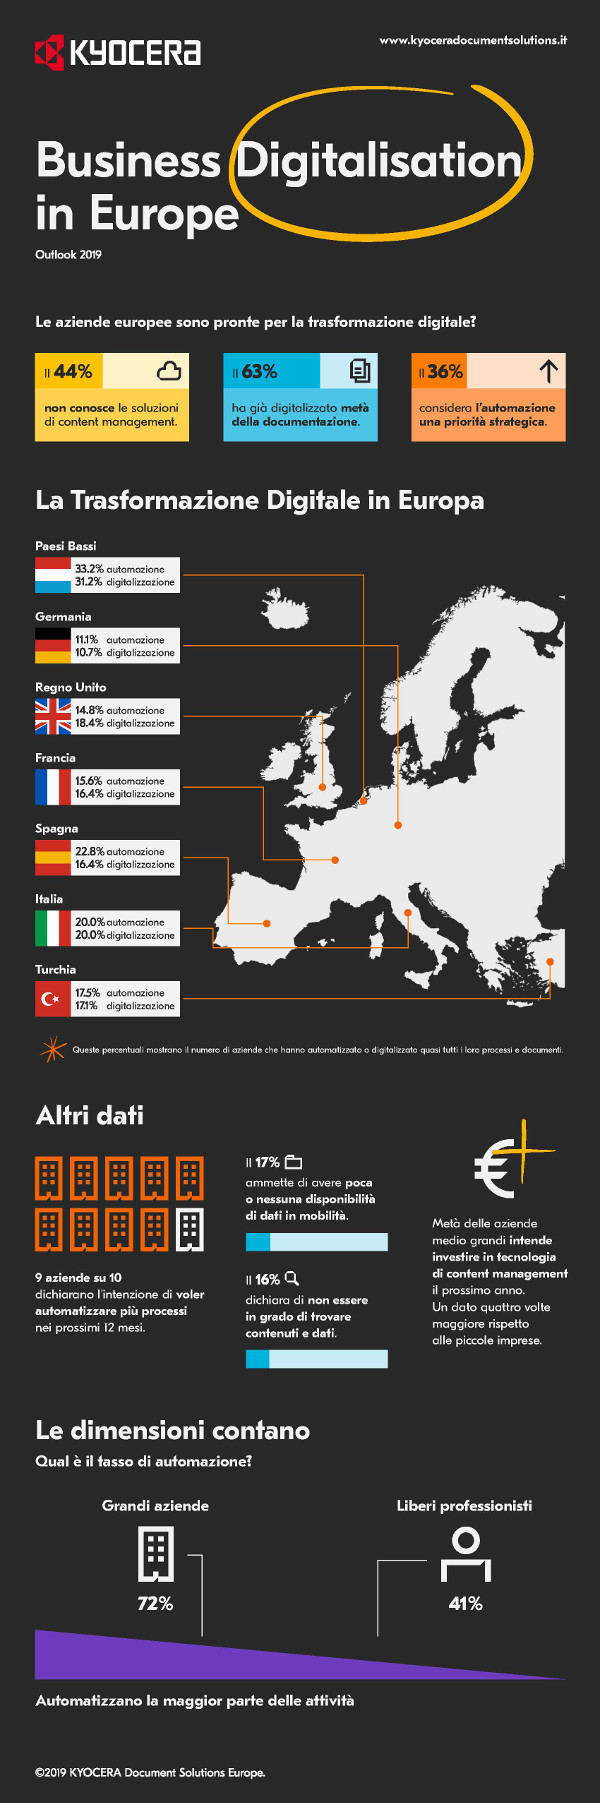 Business_Digitalisation_Europe_Infographic_IT